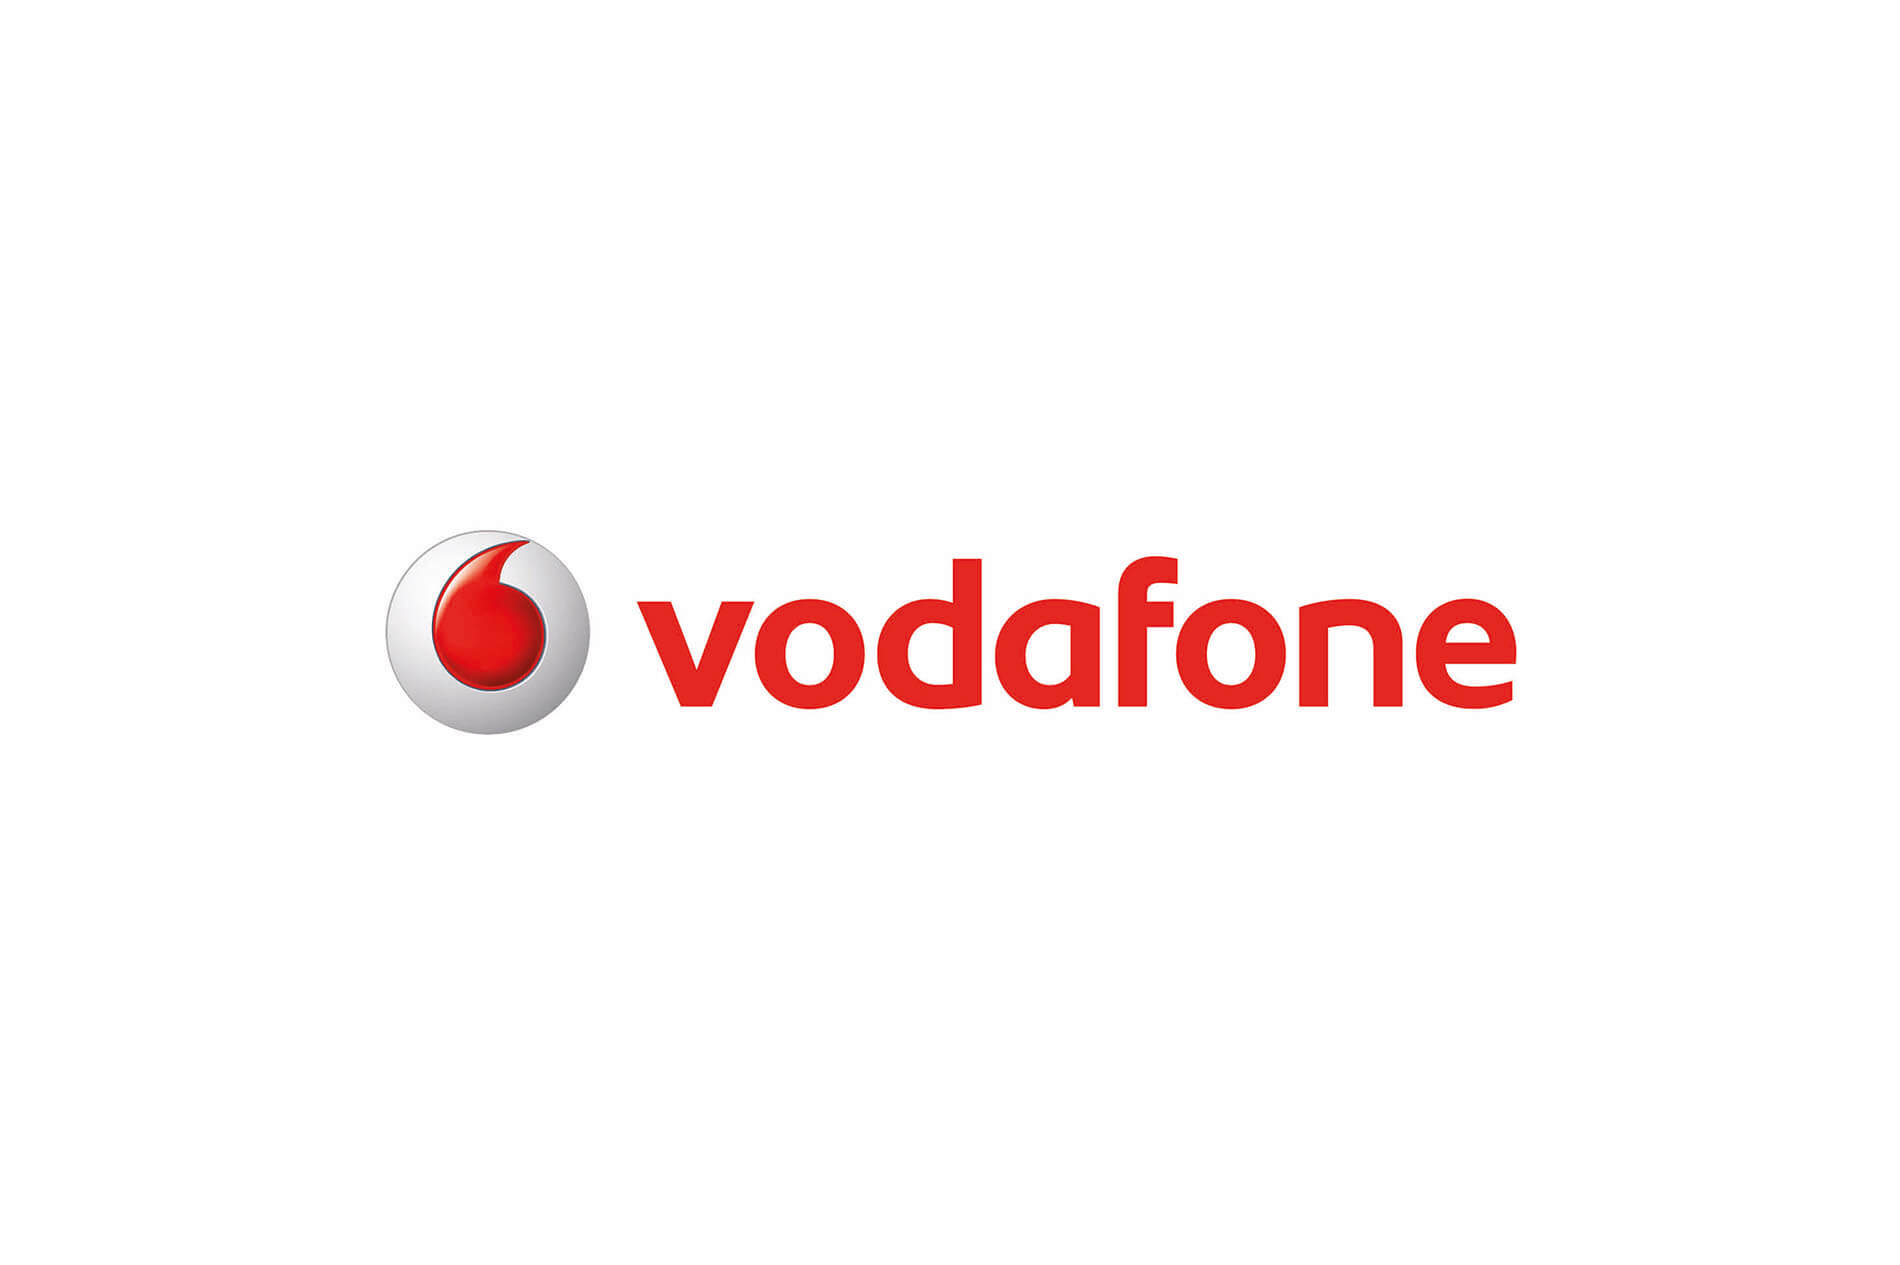 Onecom among first top tier winners in new Vodafone Partner process